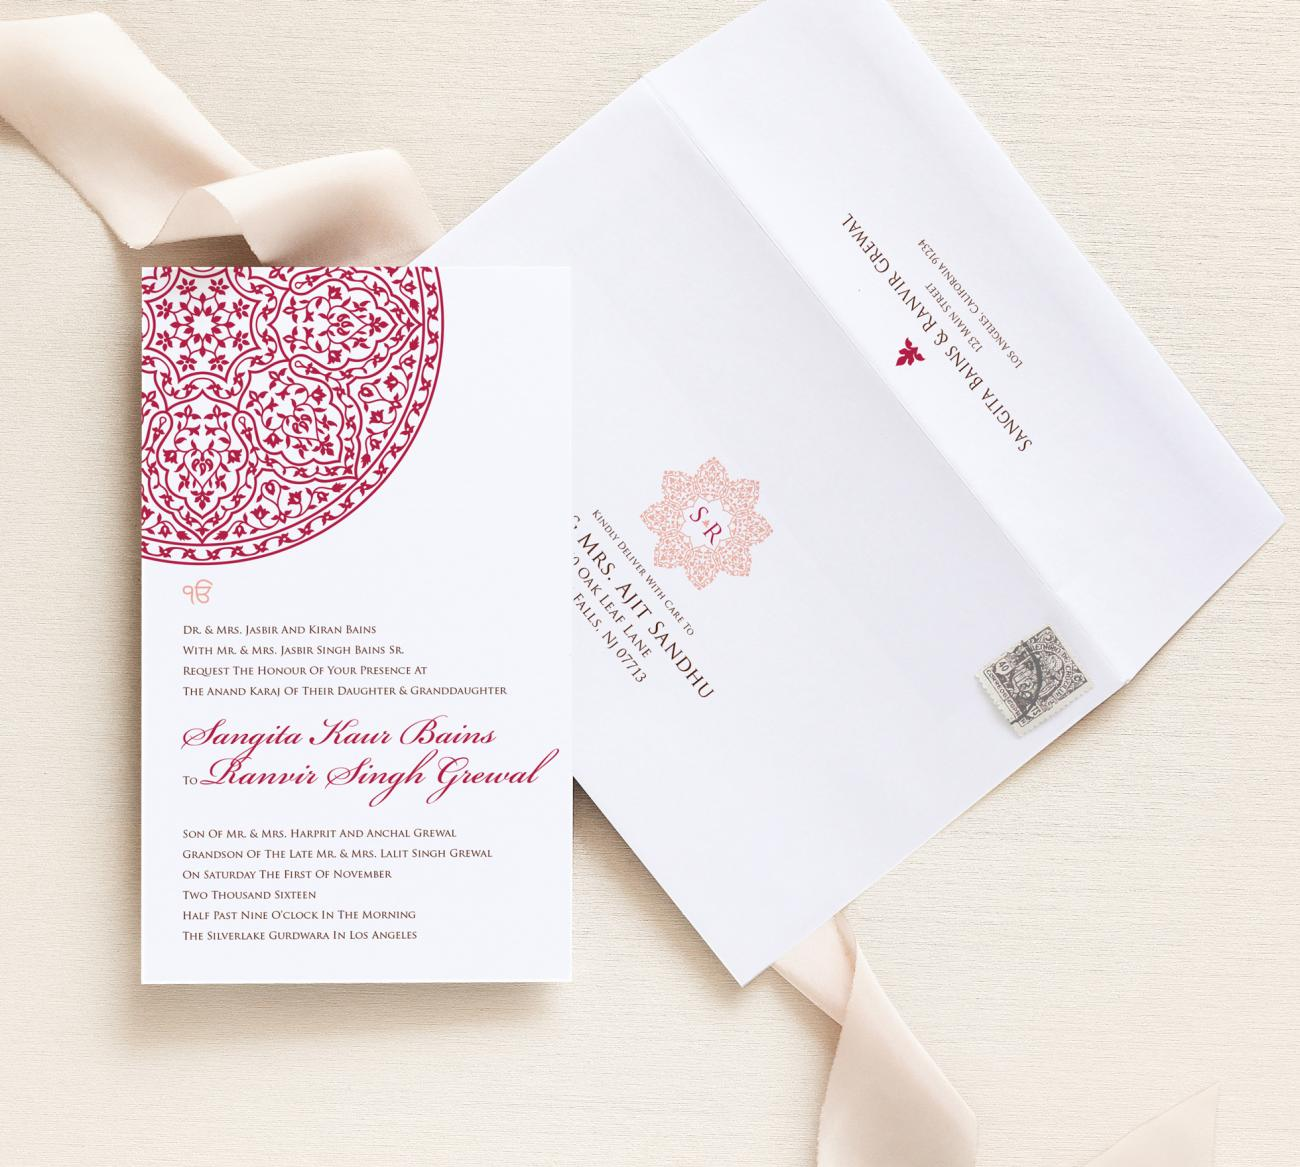 Invitation + Envelope | Cordoba Storybook